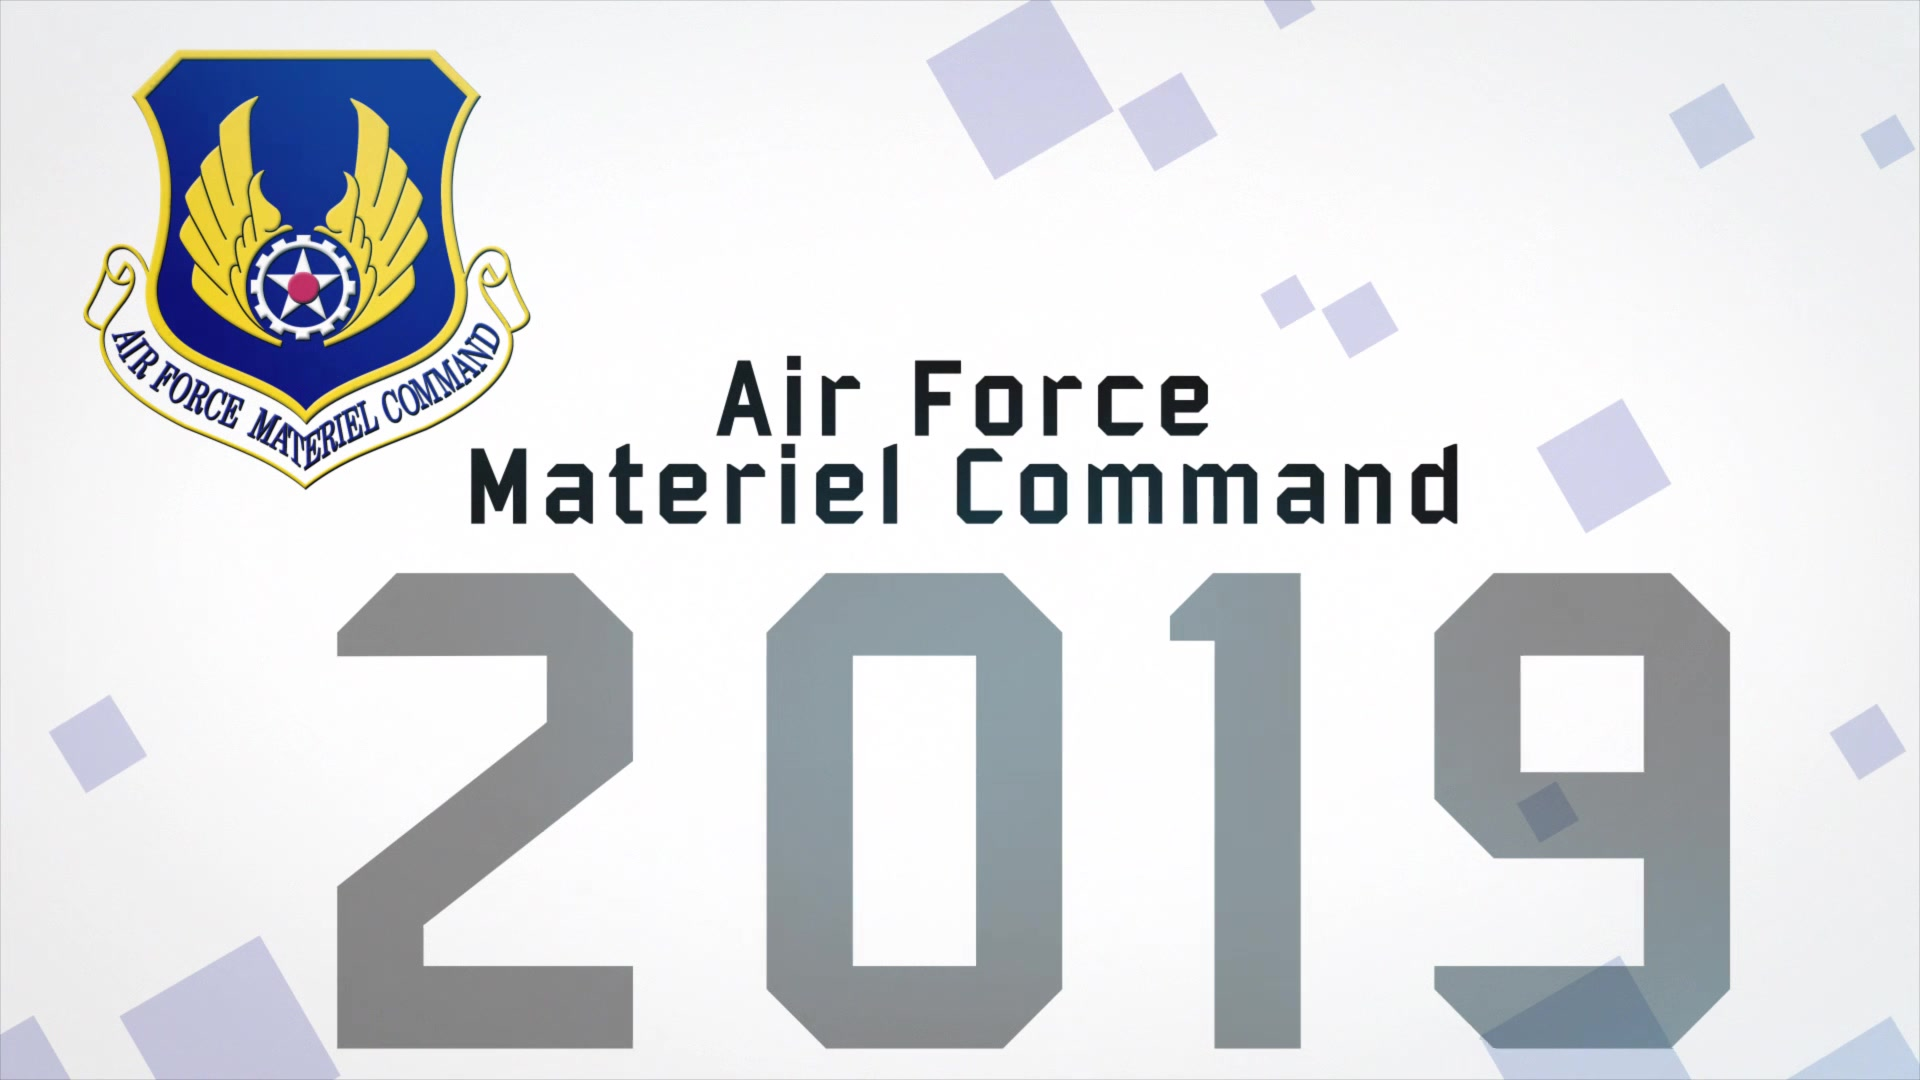 The Air Force Materiel Command wraps up 2019 with a review of the command successes over the past year. From the launch of new technologies to the acceleration of acquisition processes and more, every Air Force mission is made possible by the efforts of AFMC Airmen.